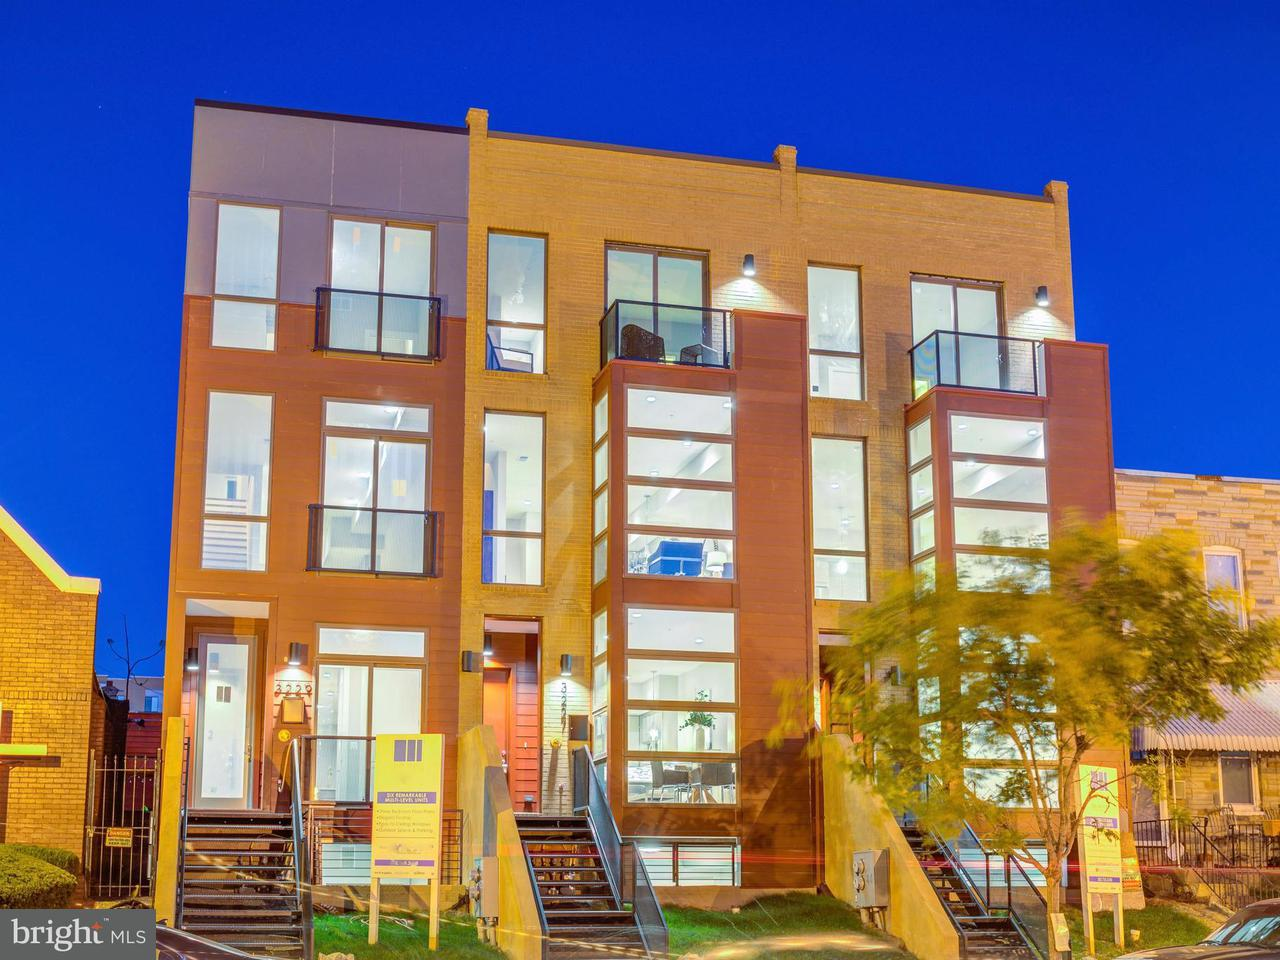 Condominium for Sale at 3227 Sherman Ave Nw #One 3227 Sherman Ave Nw #One Washington, District Of Columbia 20010 United States